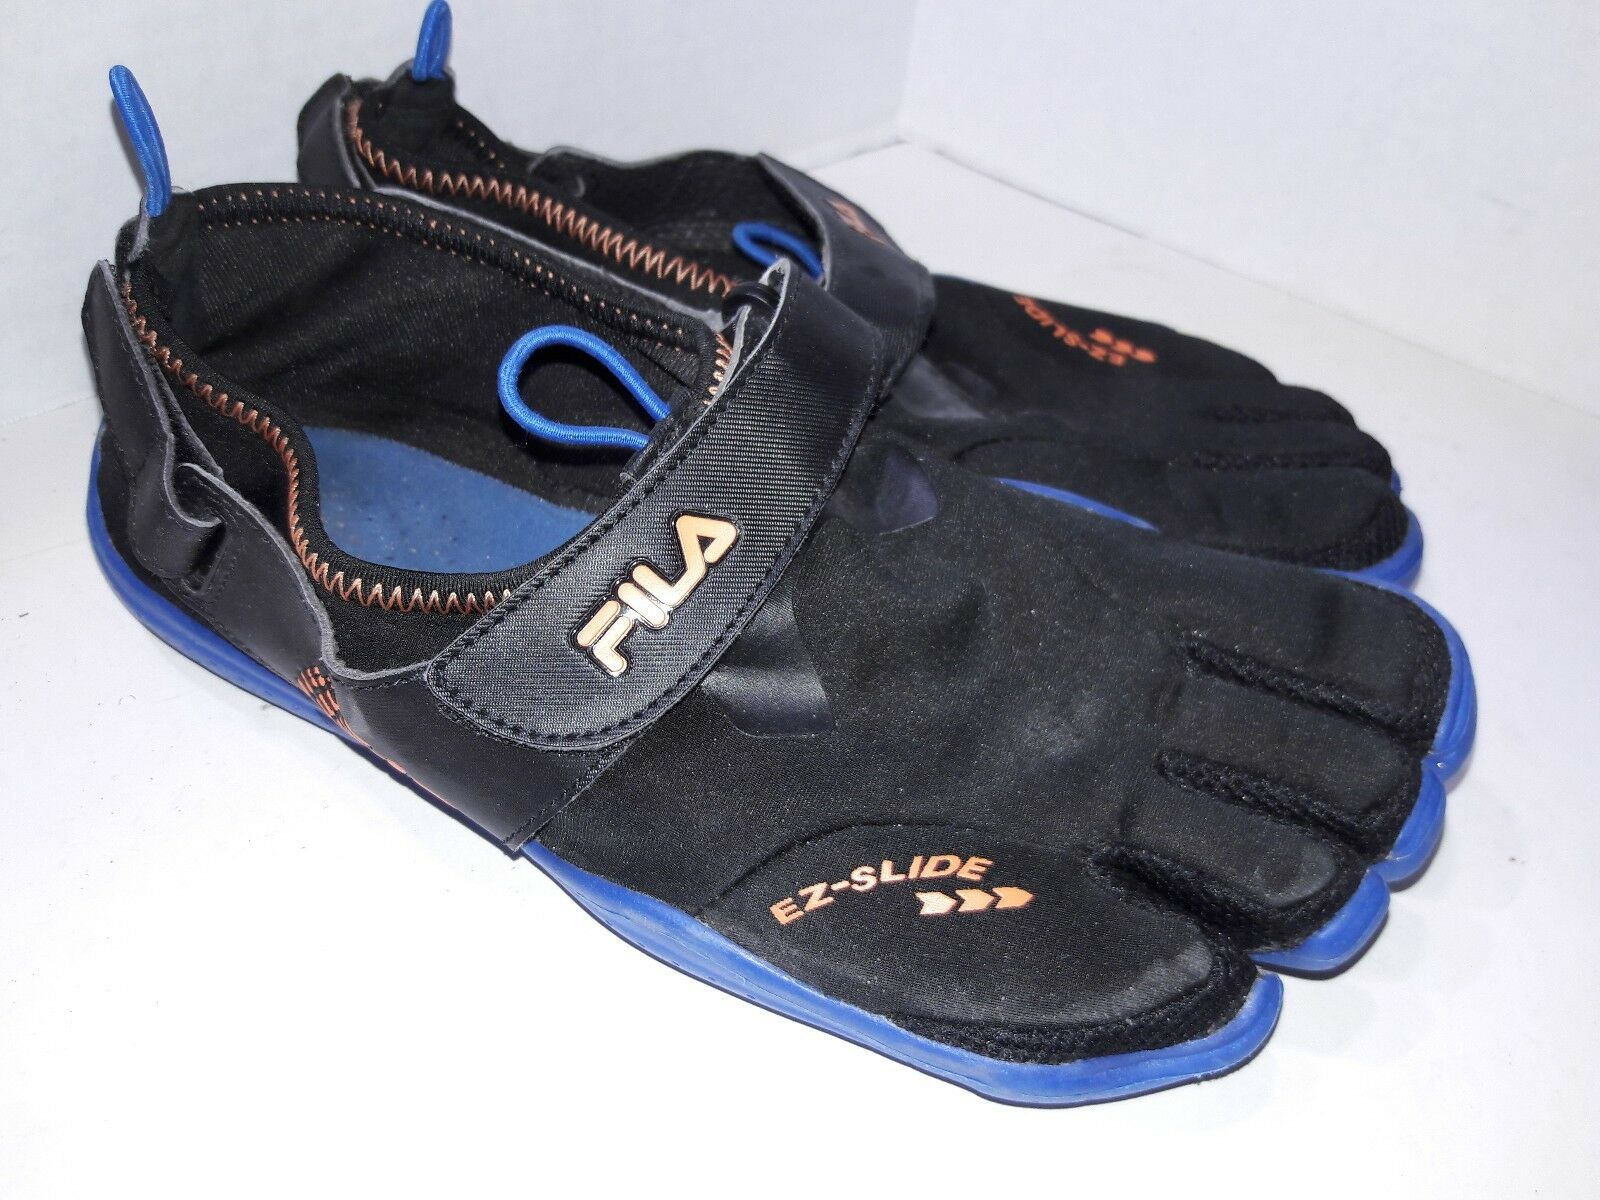 Men's FILA SKELE-TOES EZ SLIDE DRAINAGE Running Water Boat Beach shoes Size 9